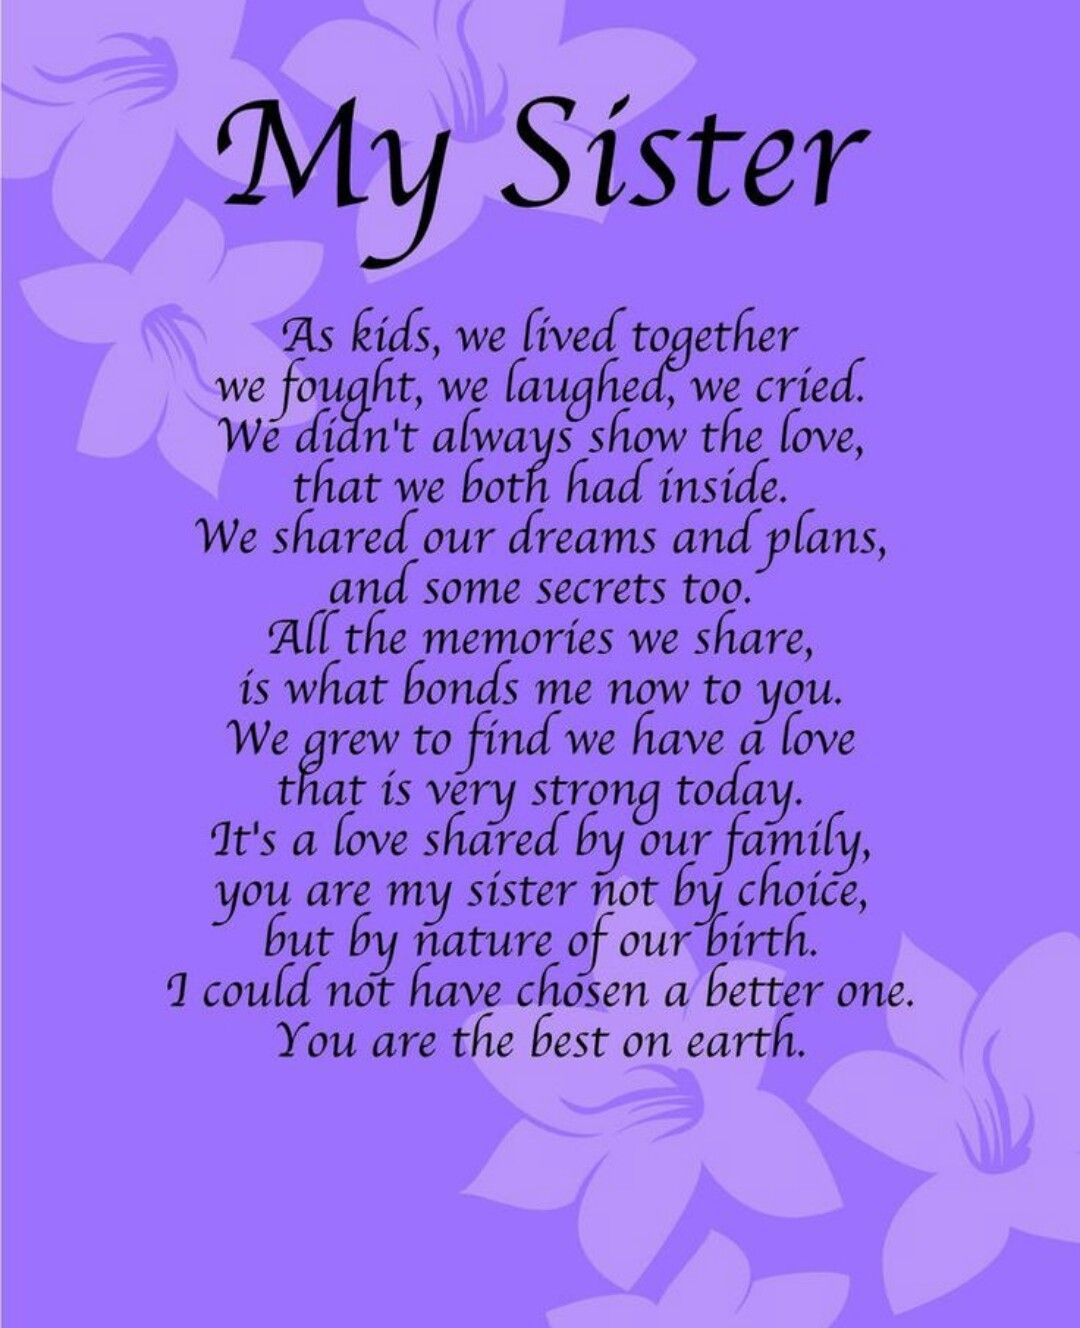 I Love My Sister Quotes Sister Poems  Sister Poem Pictures Images And Photos  Family